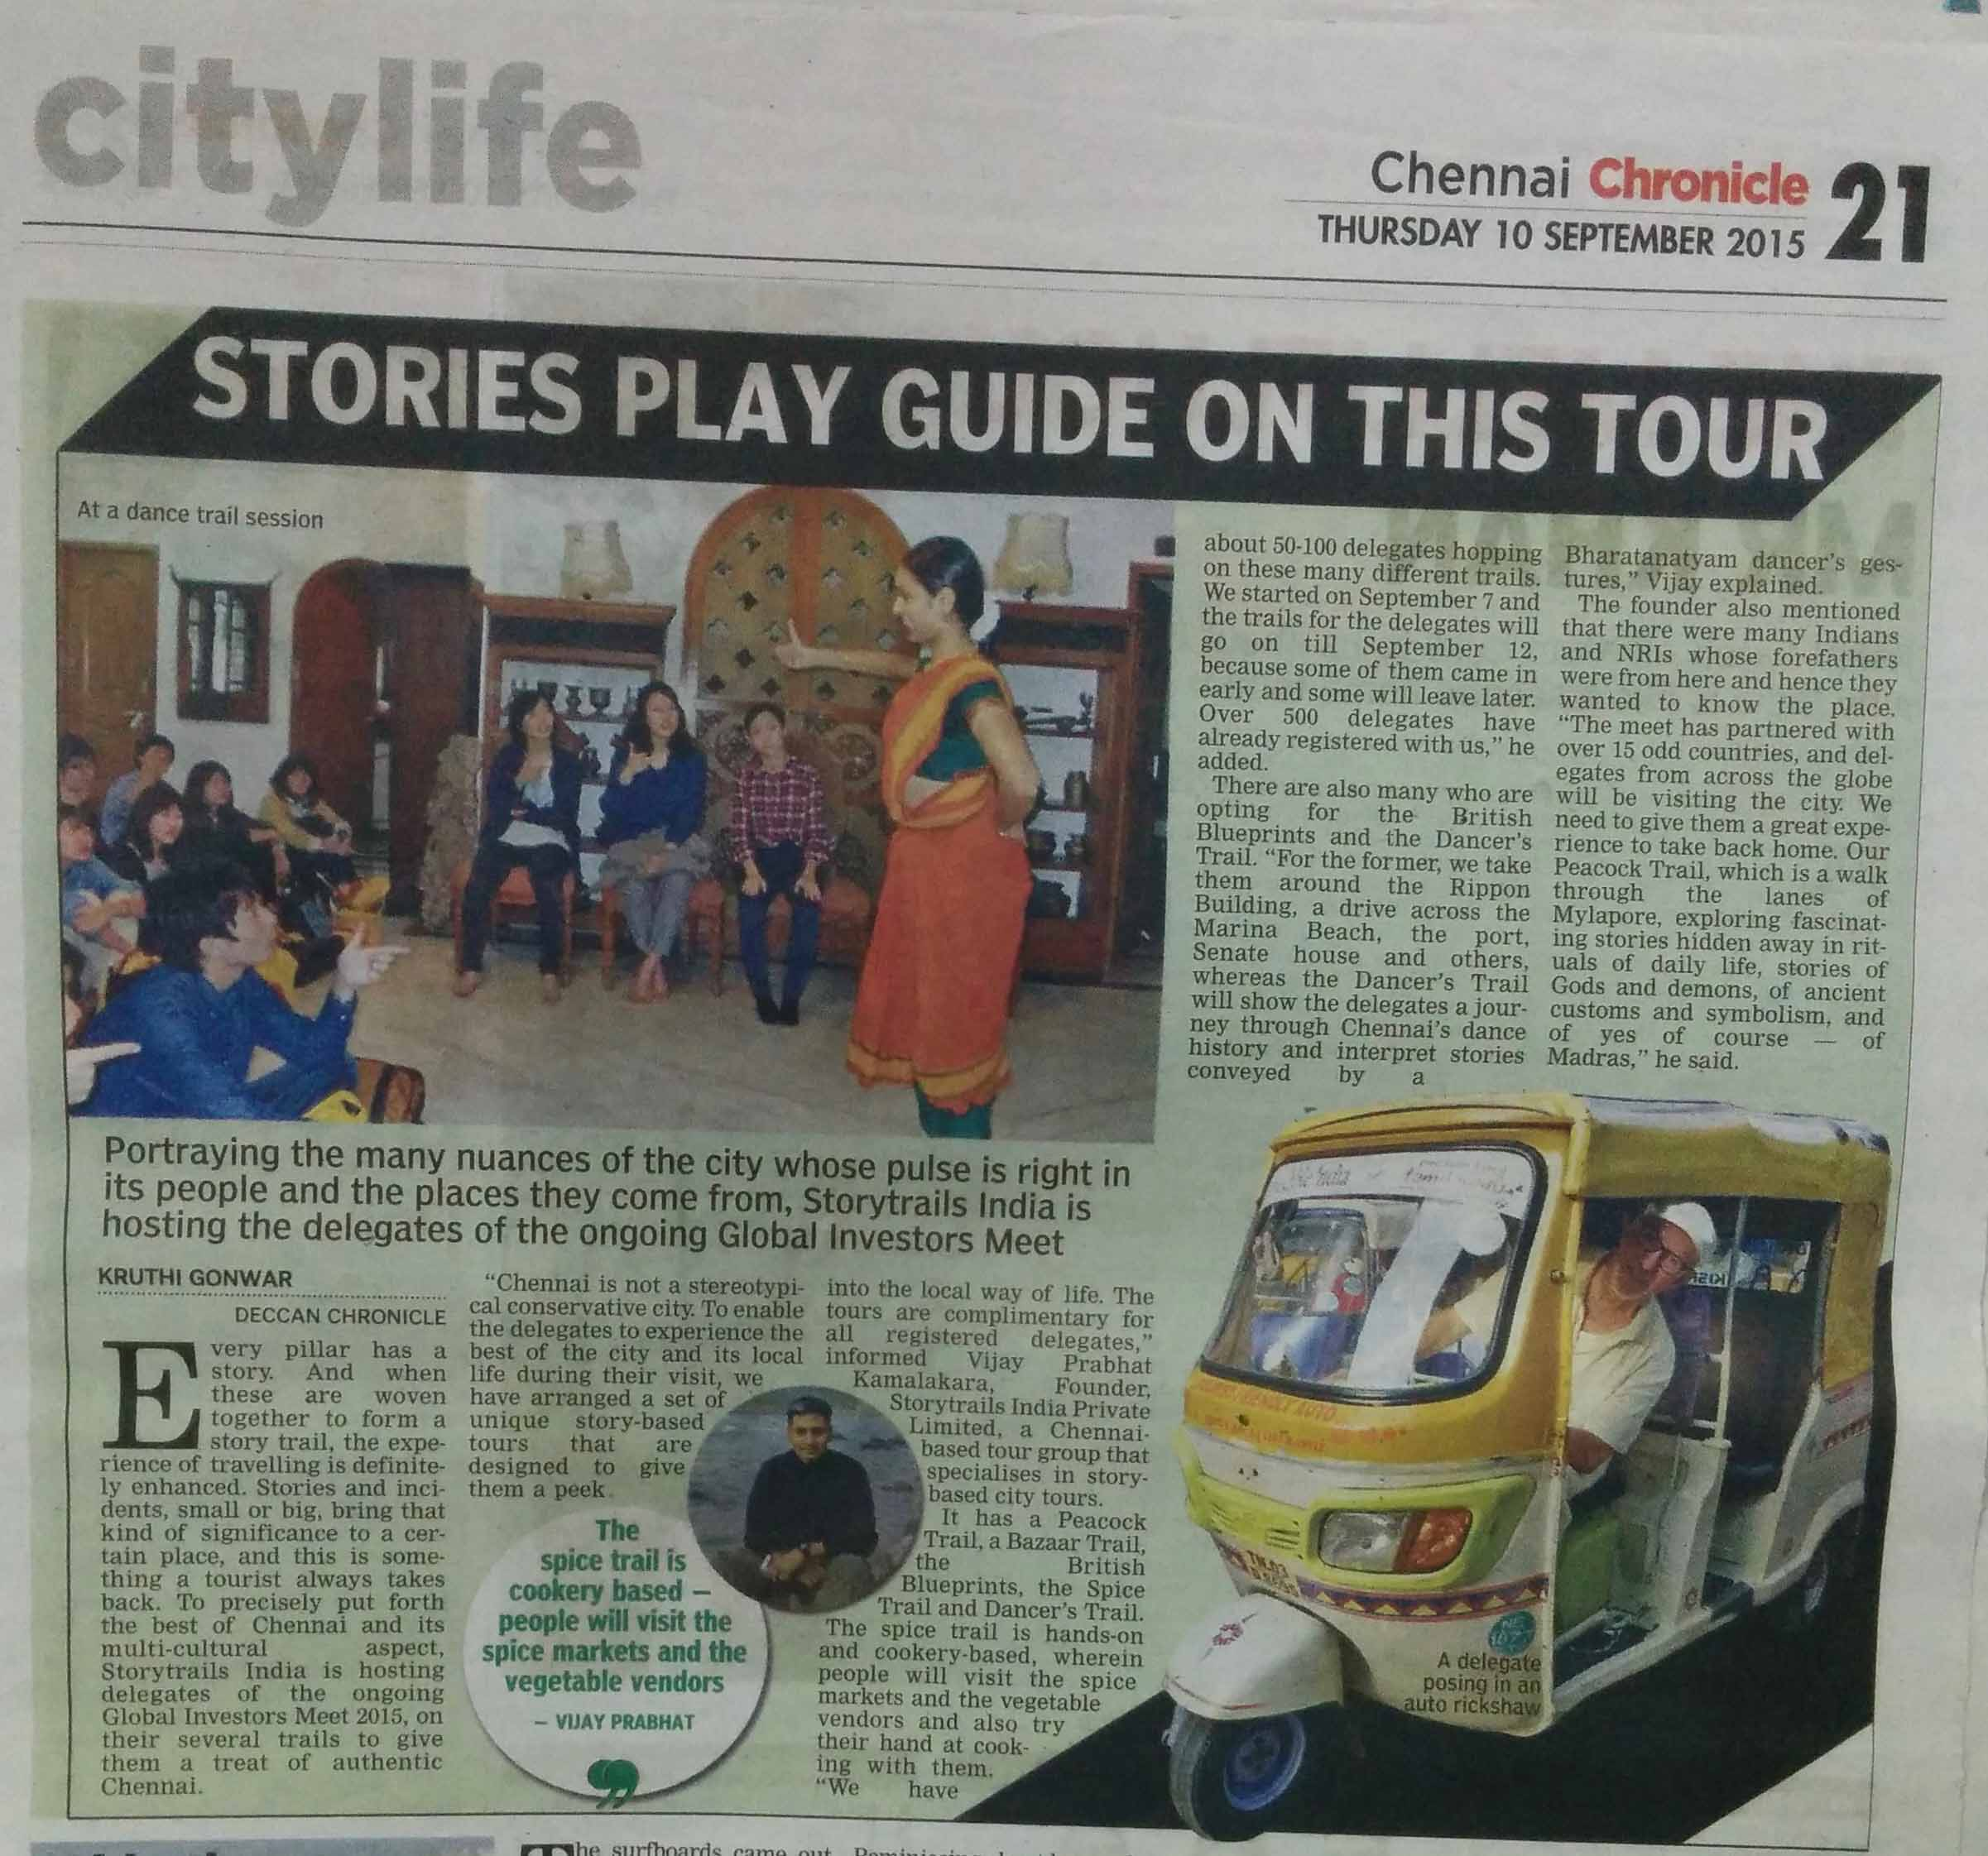 storytrails - postcards,tour operators in chennai